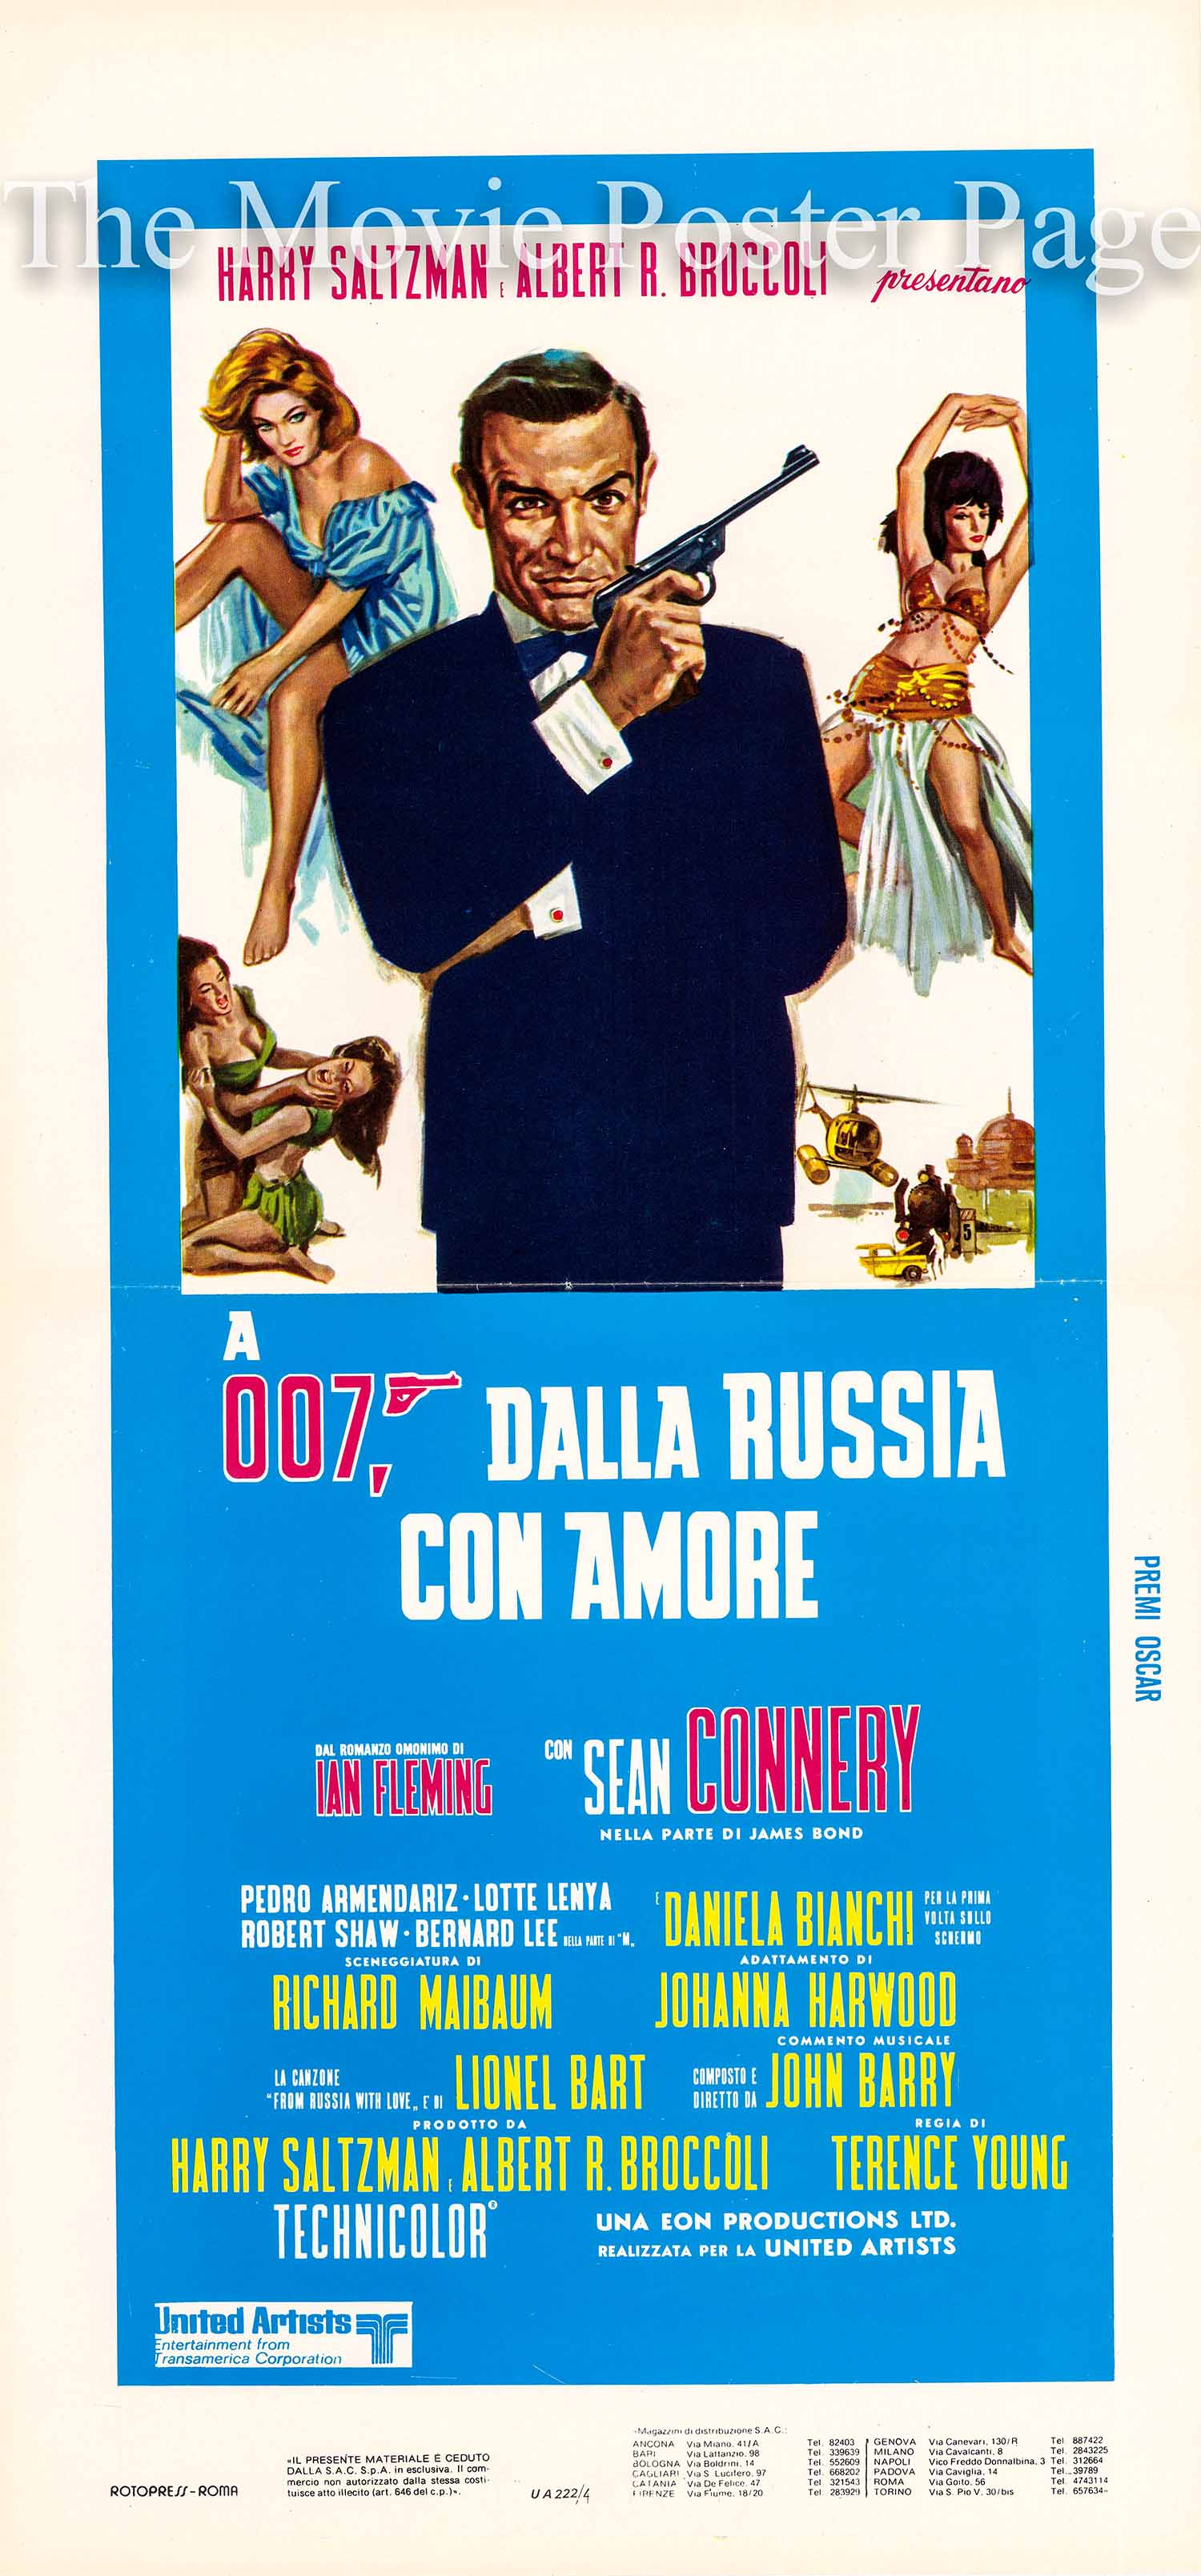 Pictured is an Italian locandina promotional poster for a 1967 rerelease of the 1963 Terence Young film From Russia with Love starring Sean Connery.